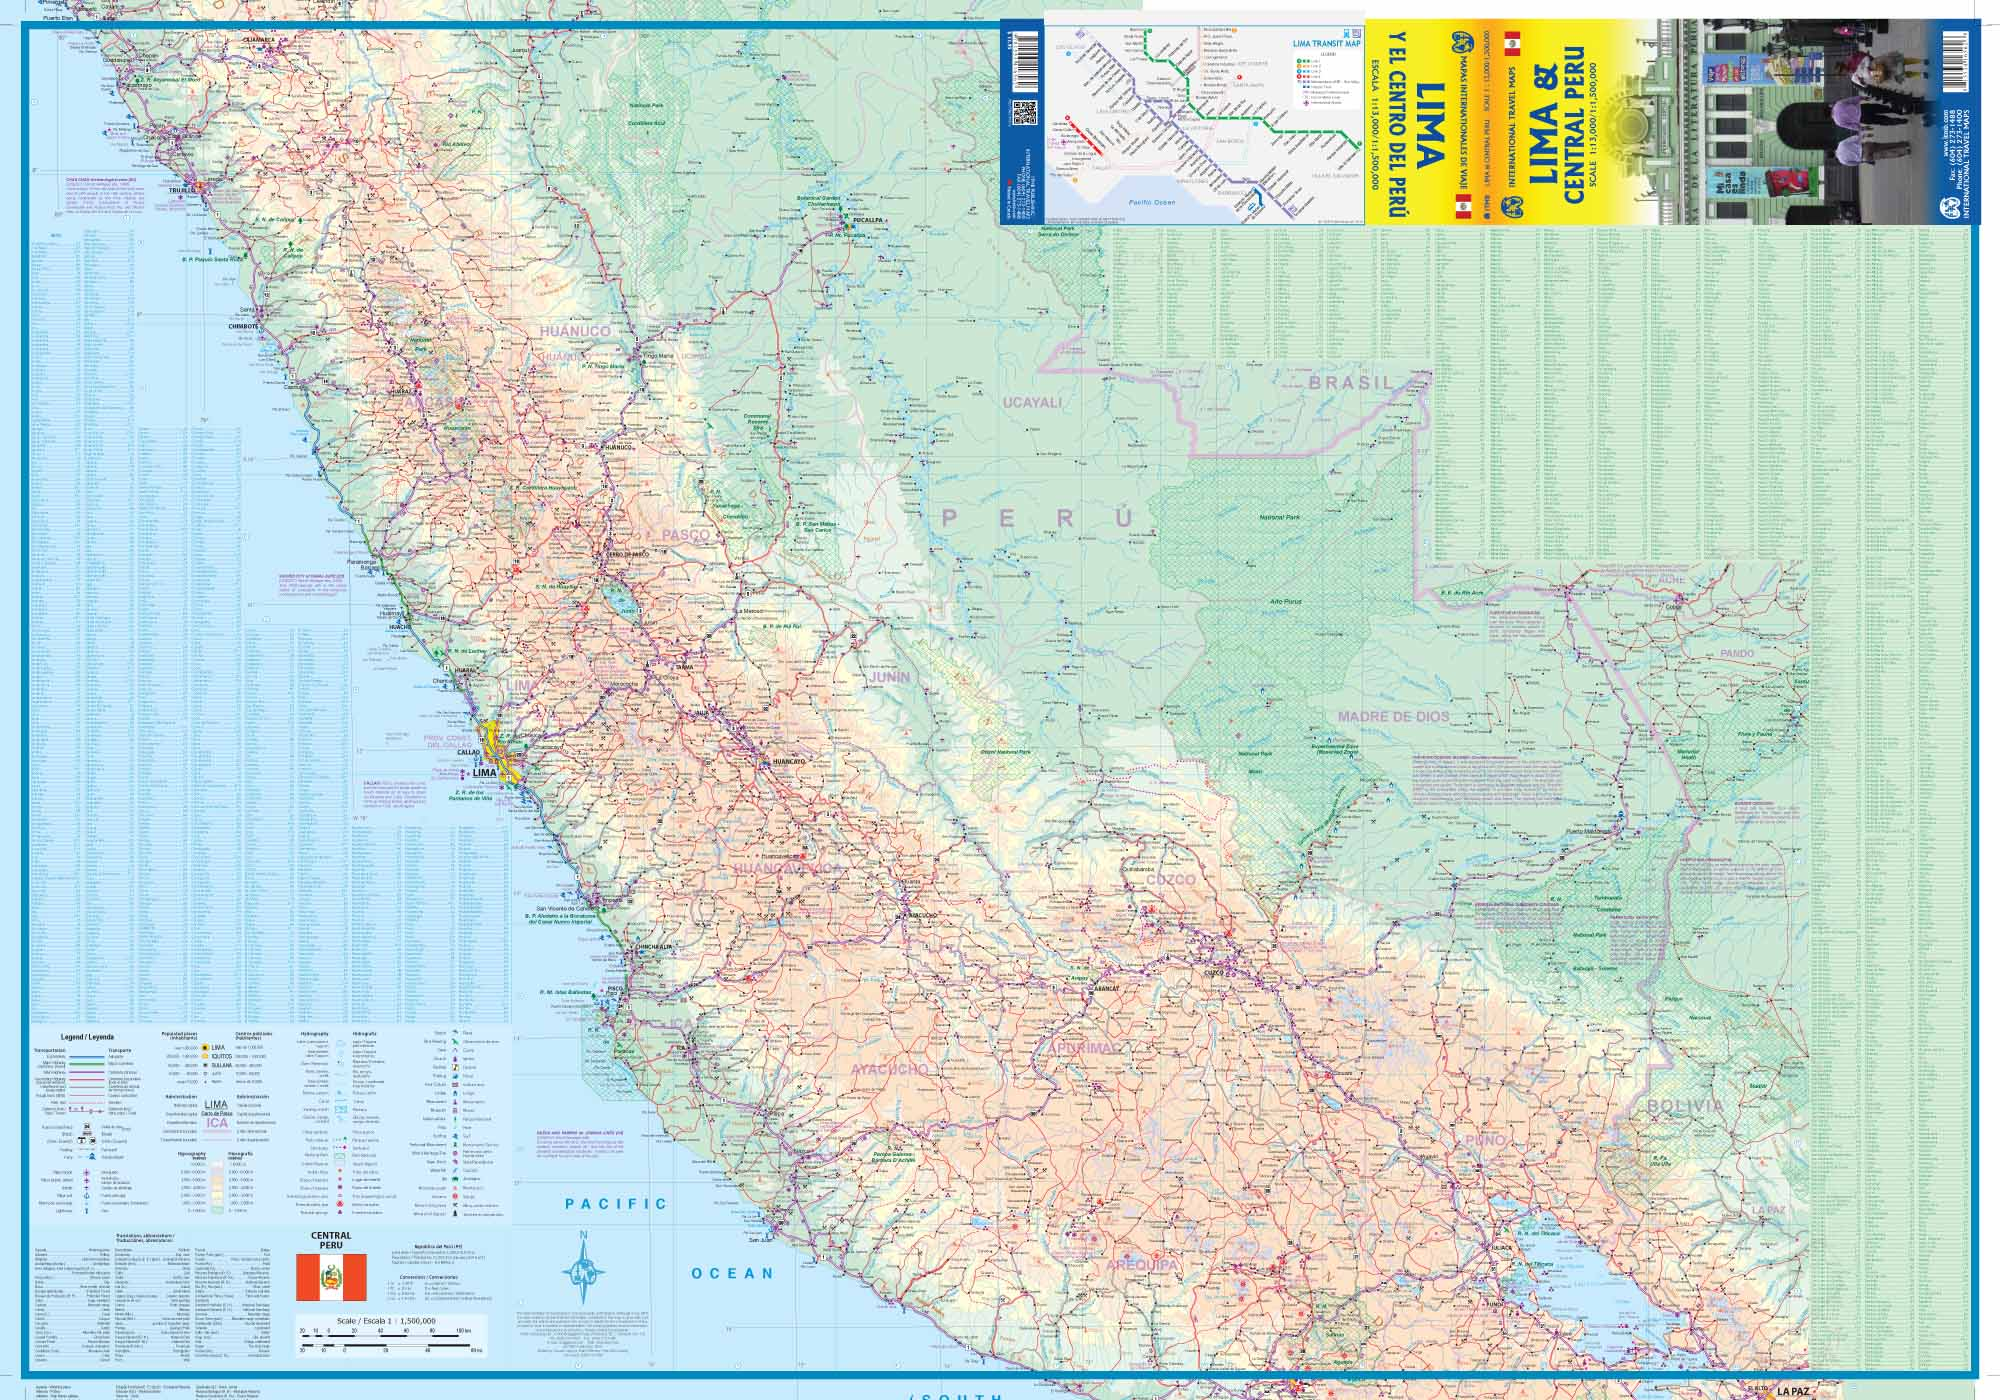 Maps For Travel City Maps Road Maps Guides Globes Topographic - Road map of peru